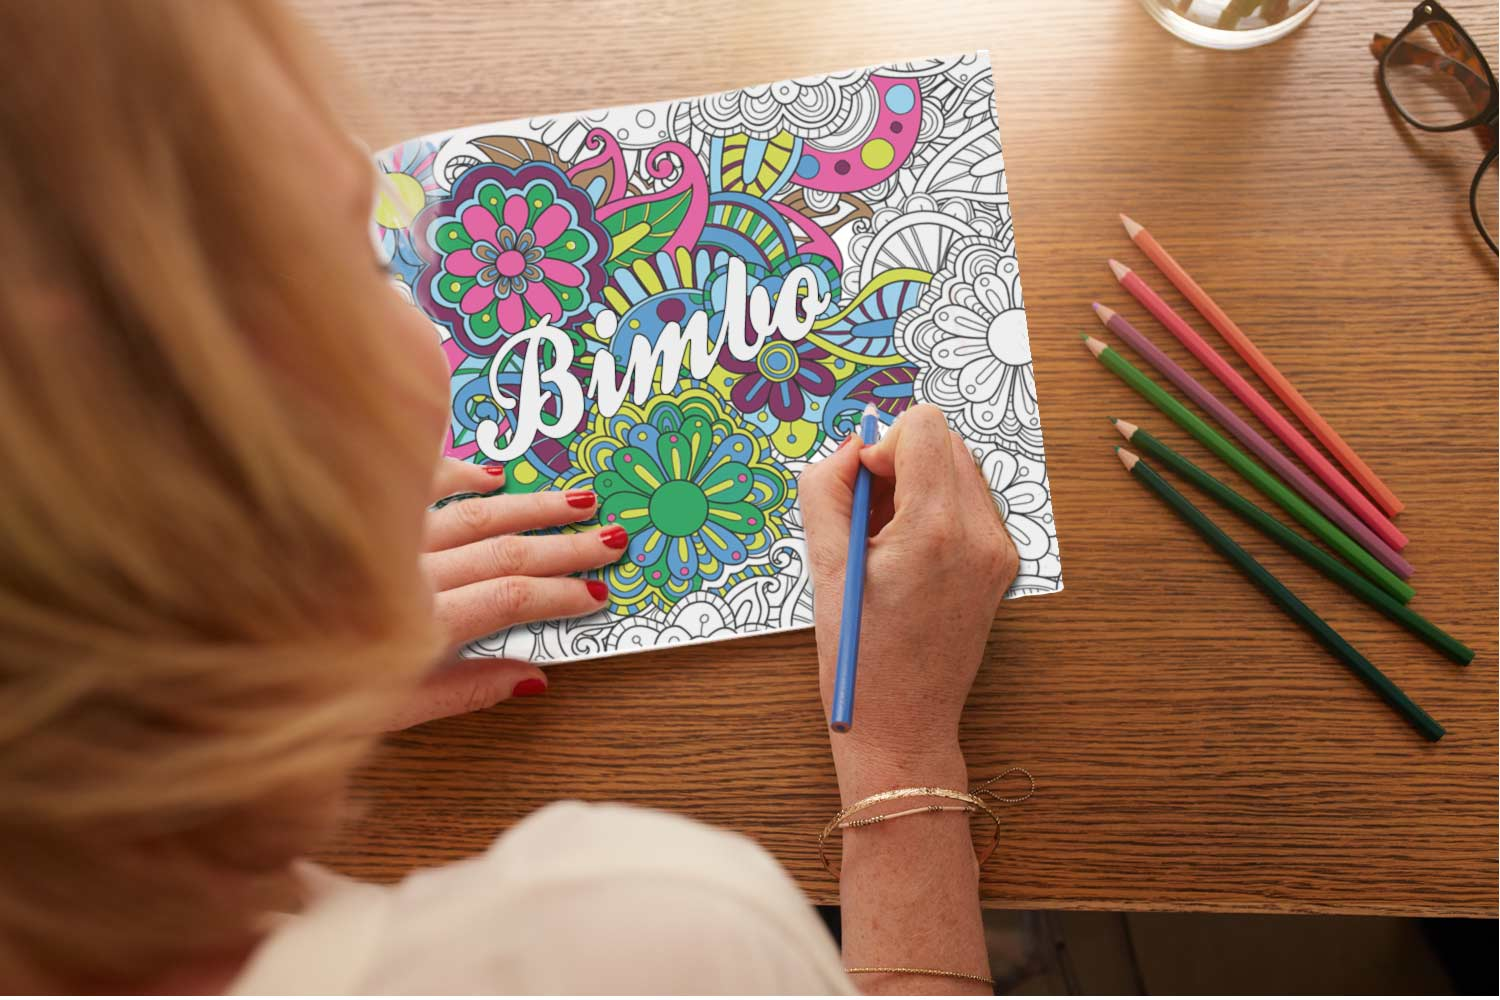 coloring-book-adult-swear-word-bimbo